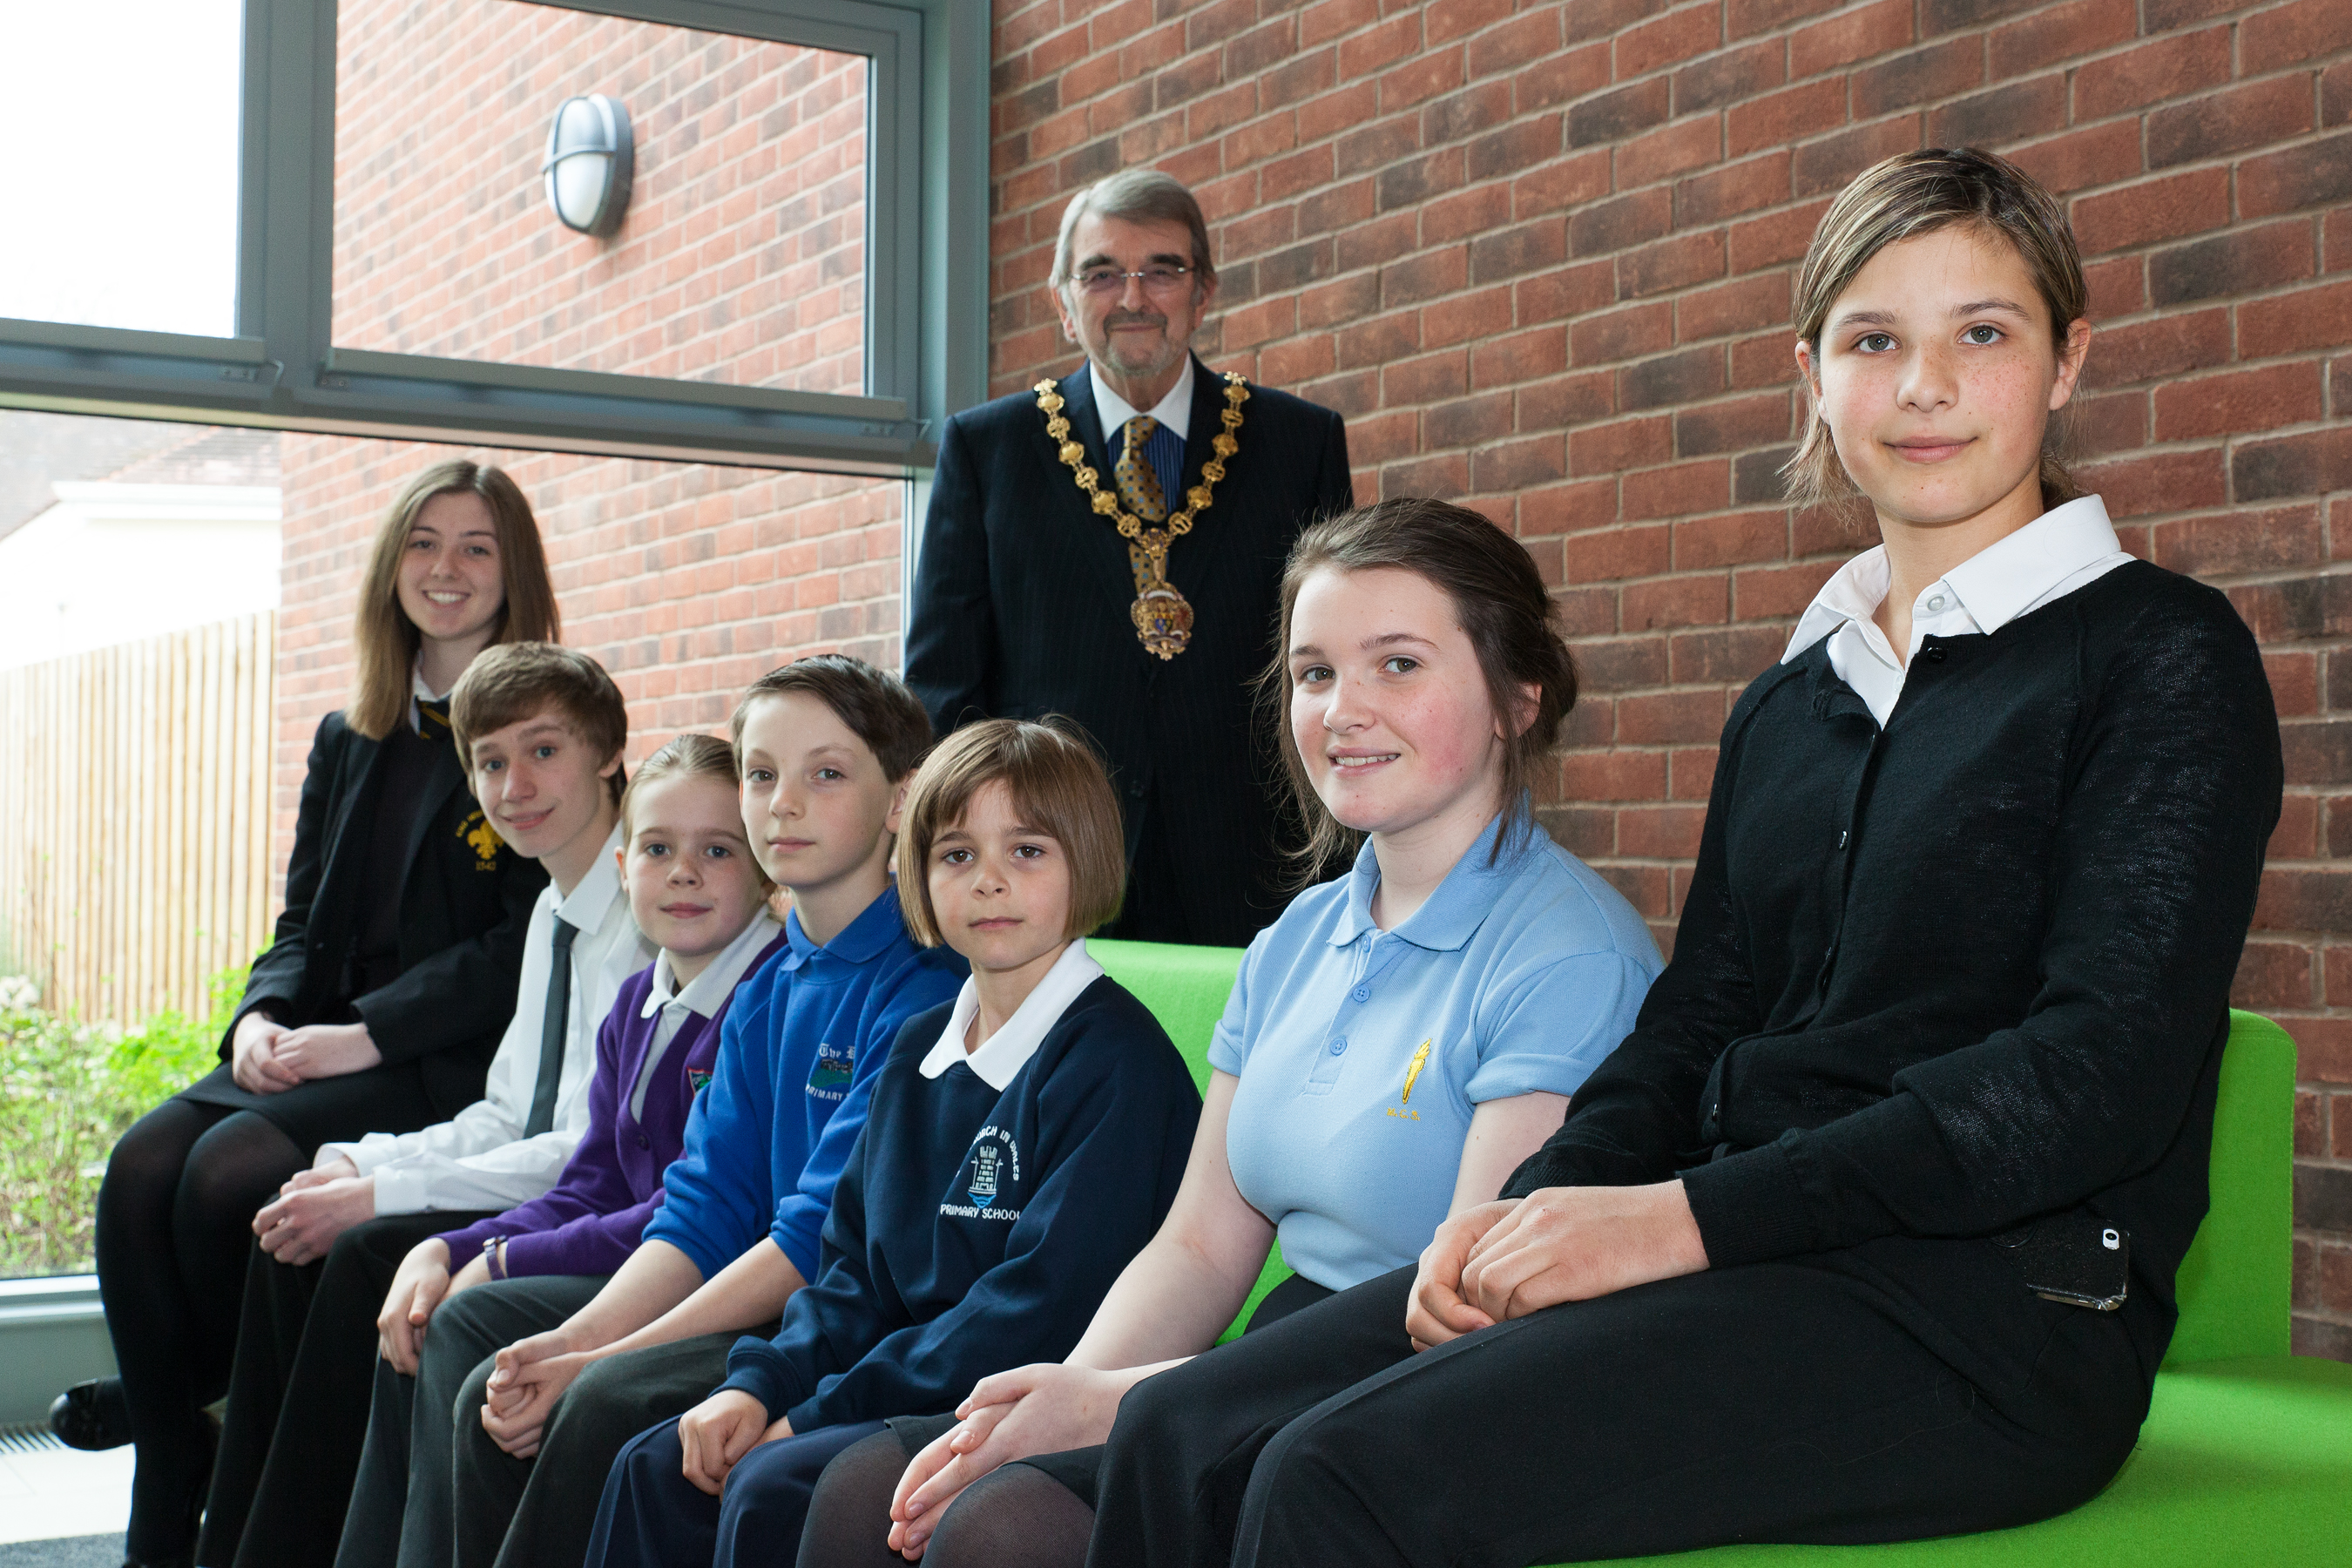 "Monmouthshire County Council - Run The Council For The Day Event - at Usk Headquarters. L-R: Angharad Clarke - King Henry VIII School, Bethany Woollard - Deri View School, James Taylor - Caldicot Comprehensive, Sean Cupis - The Dell ""And Overall Winner of the competition"", Amelia Worsley - Usk CIW, Anna Thomas - Monmouth Comprehensive, Ruth Chohan - Home Tutored. All enjoying spending the day at Monmouthshire County Council Usk Headquarters with Council Chairman - Cllr David Dovey - MCC Chairman - (Rear)"